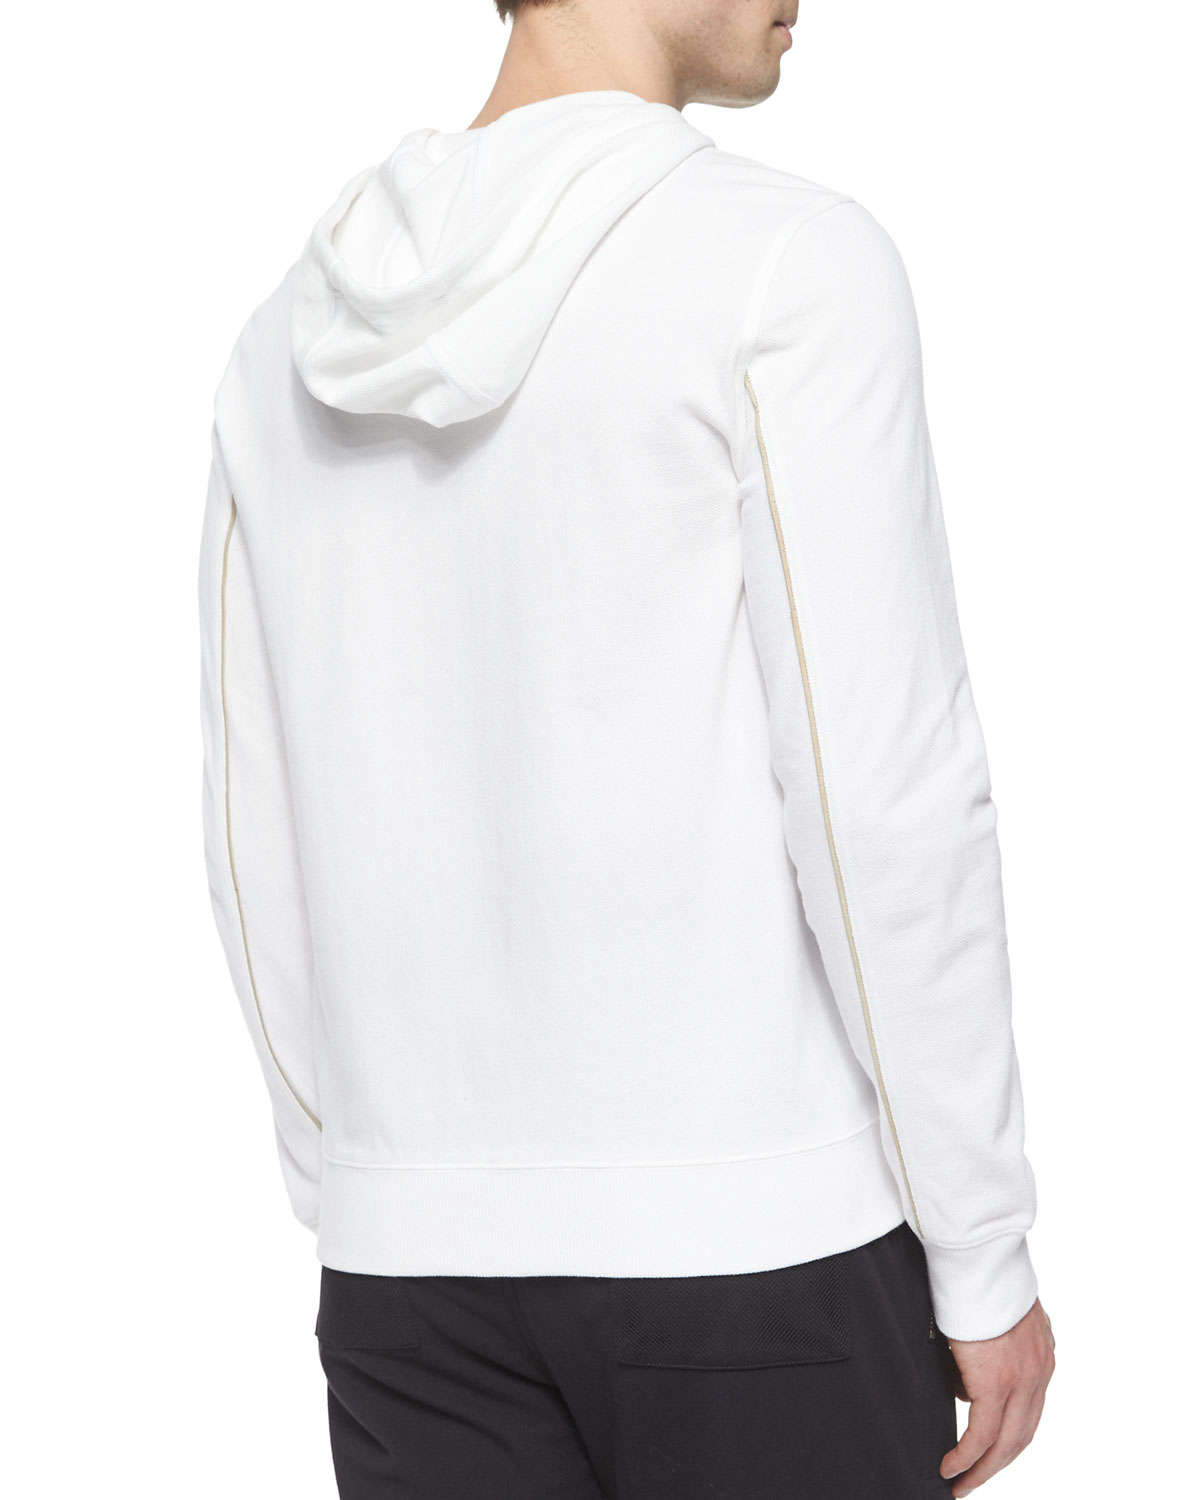 758abc0d0bdcb Lyst - Michael Kors Waffle-knit Zip-up Hoodie Jacket in White for Men